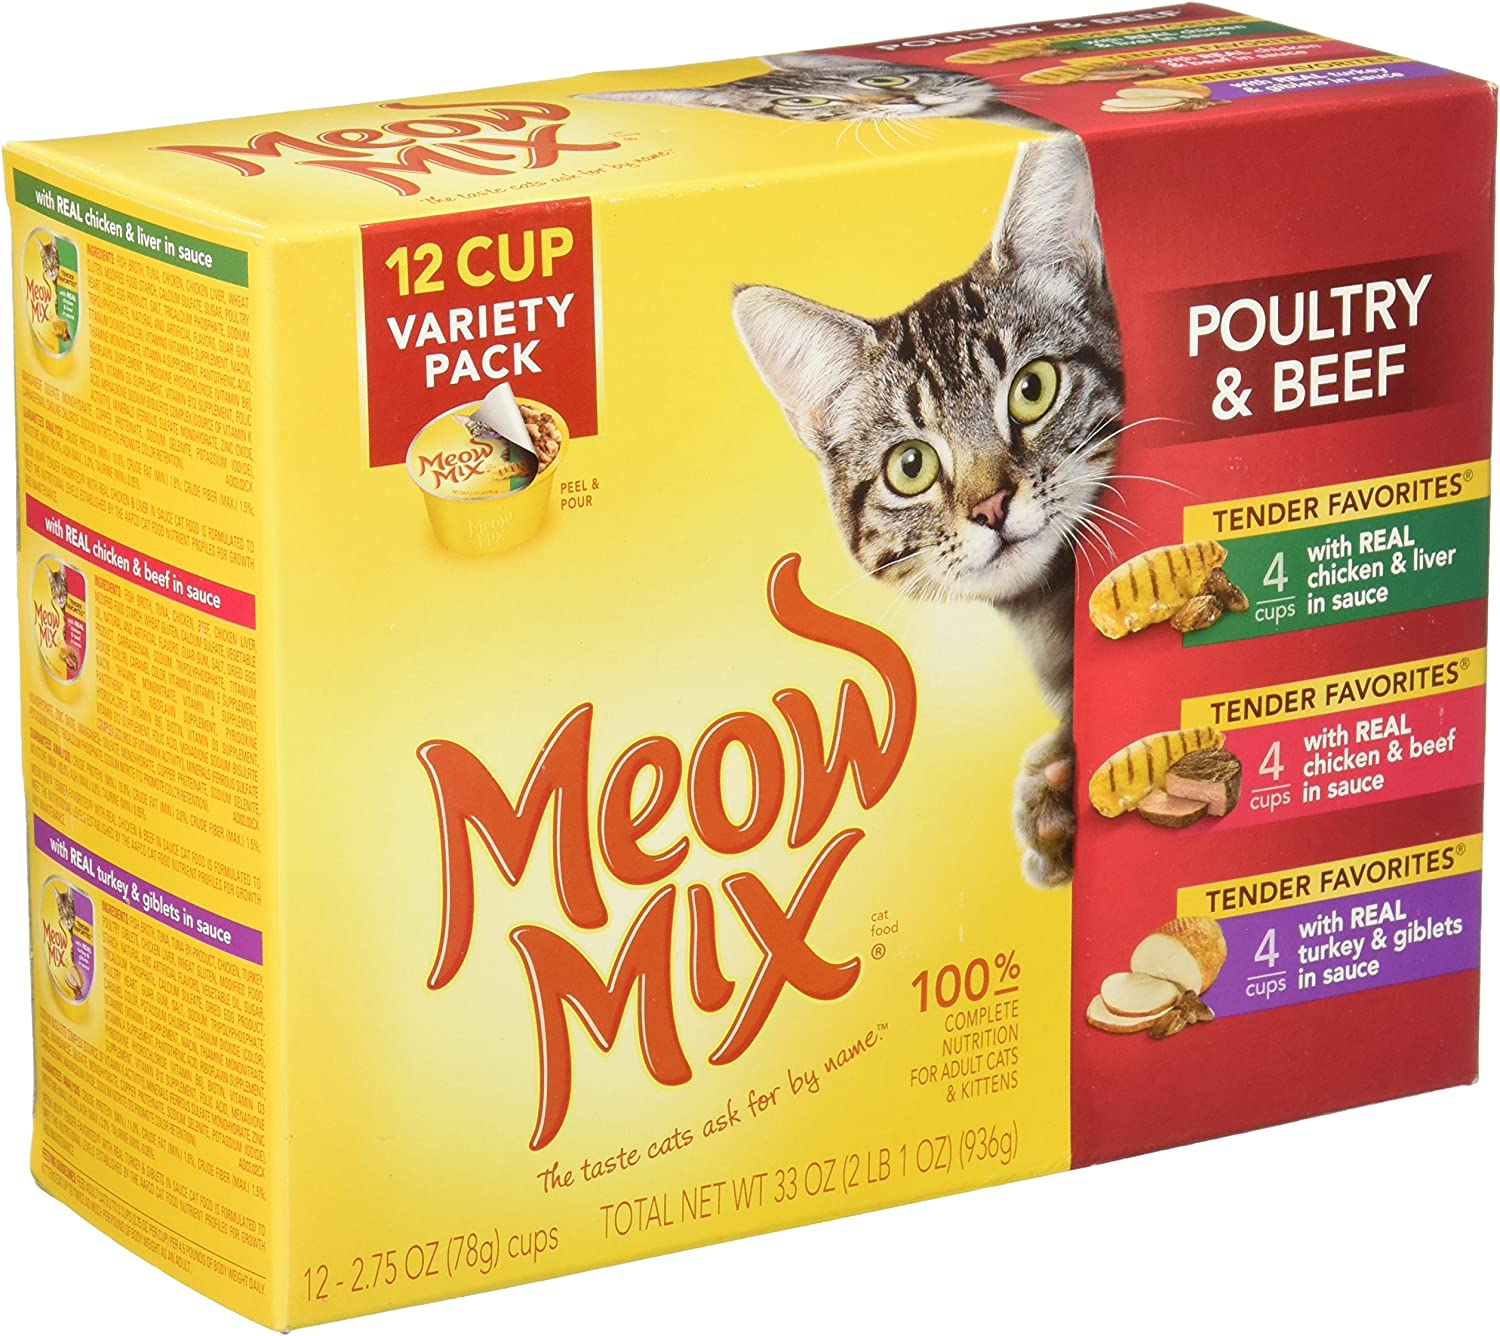 Meow Mix Market Select Variety Pack Moist Cat Food in Gravy (12 Pack)